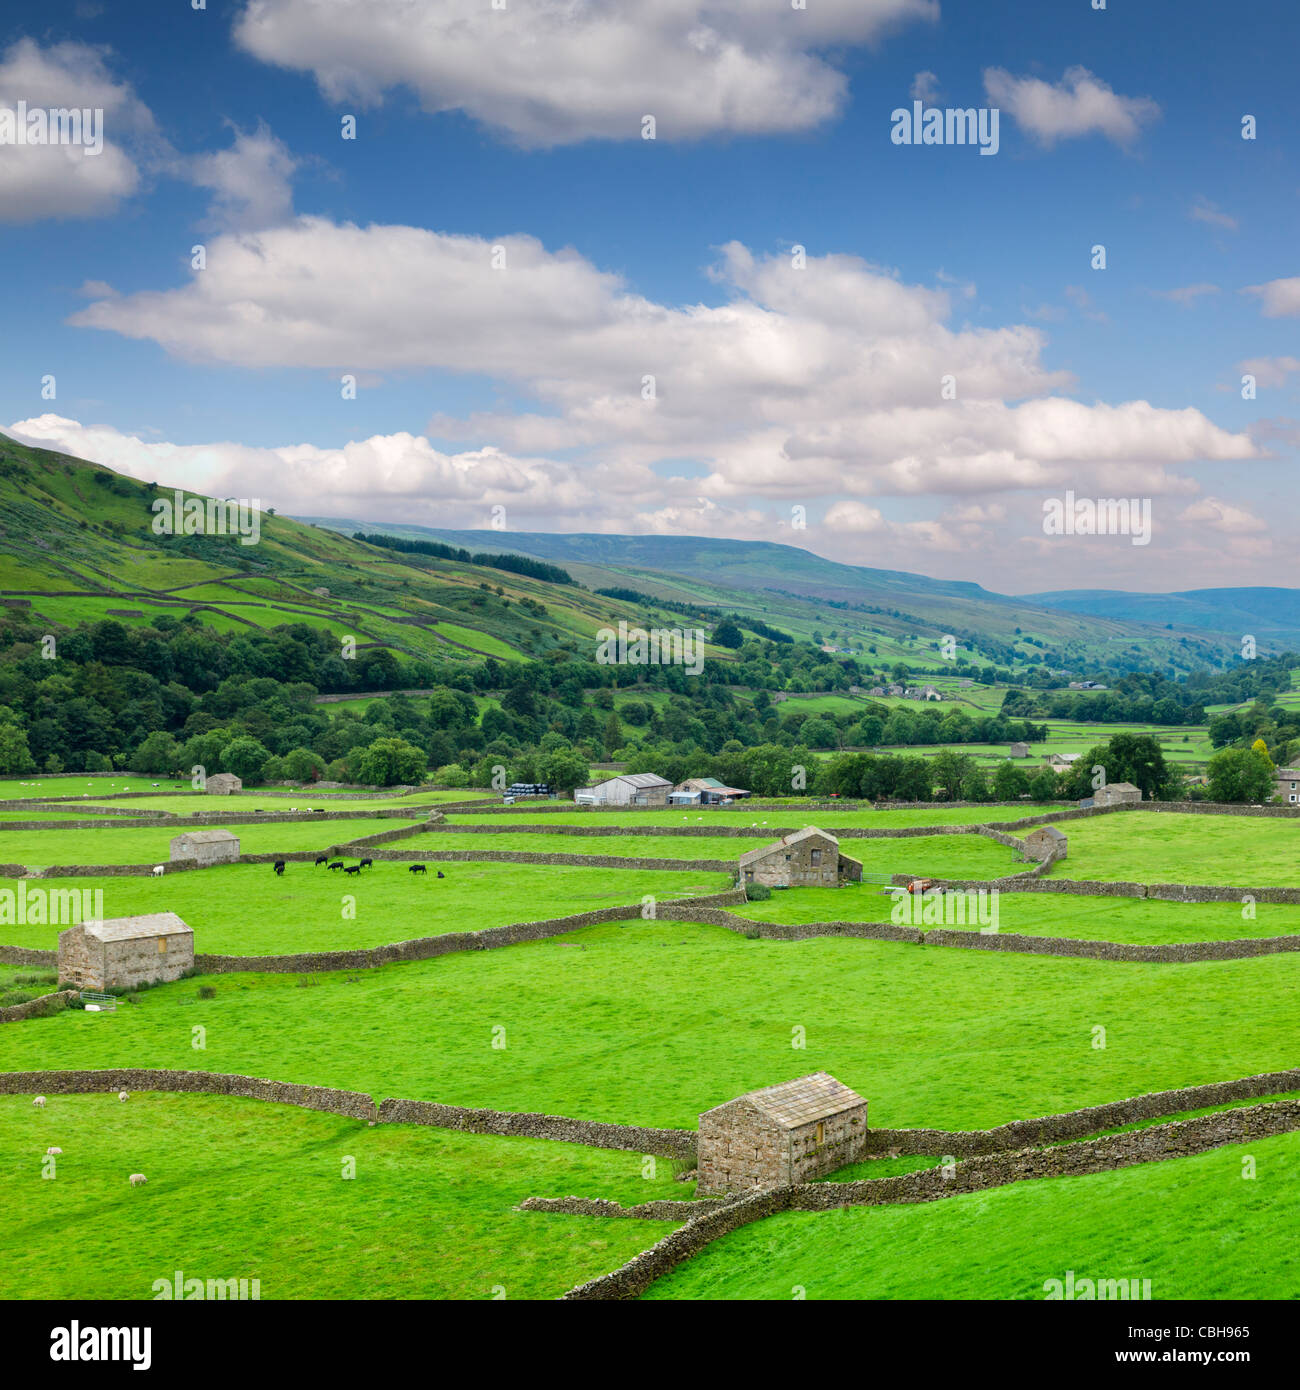 A peaceful scene in Swaledale, North Yorkshire, England, with farmland, barns and dry stone walls. - Stock Image